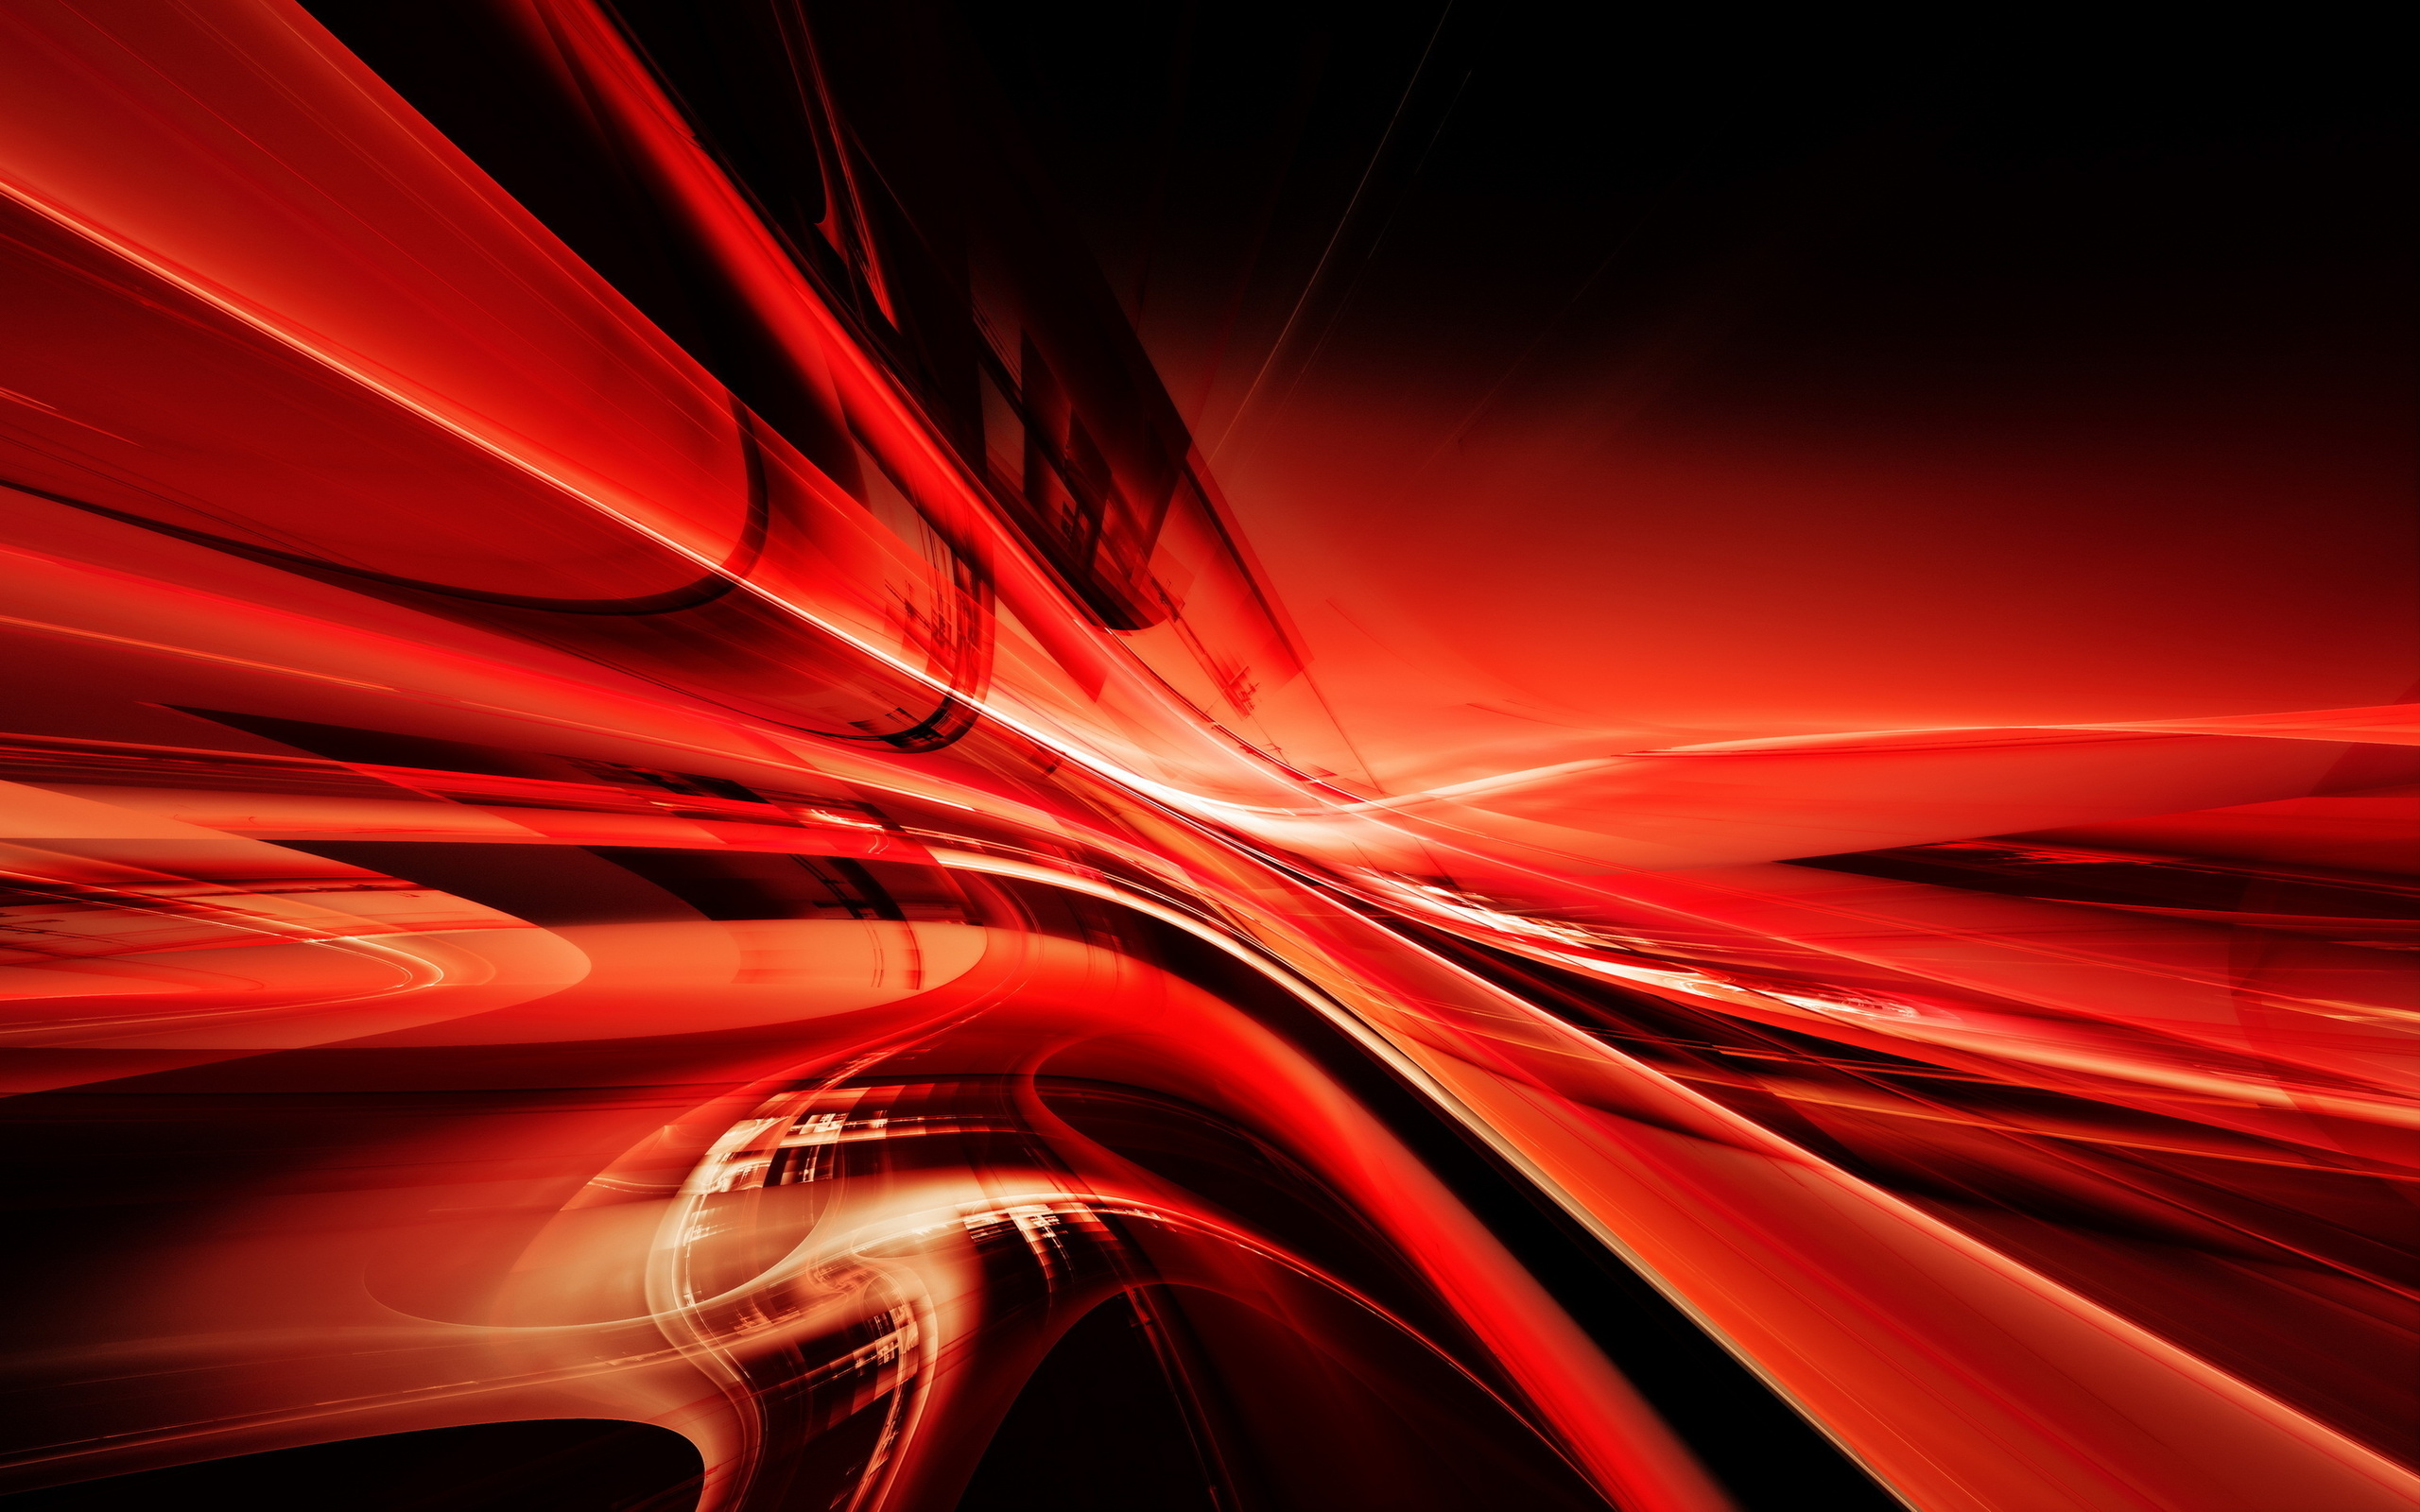 abstract 3d, hd 3d, 4k wallpapers, images, backgrounds, photos and